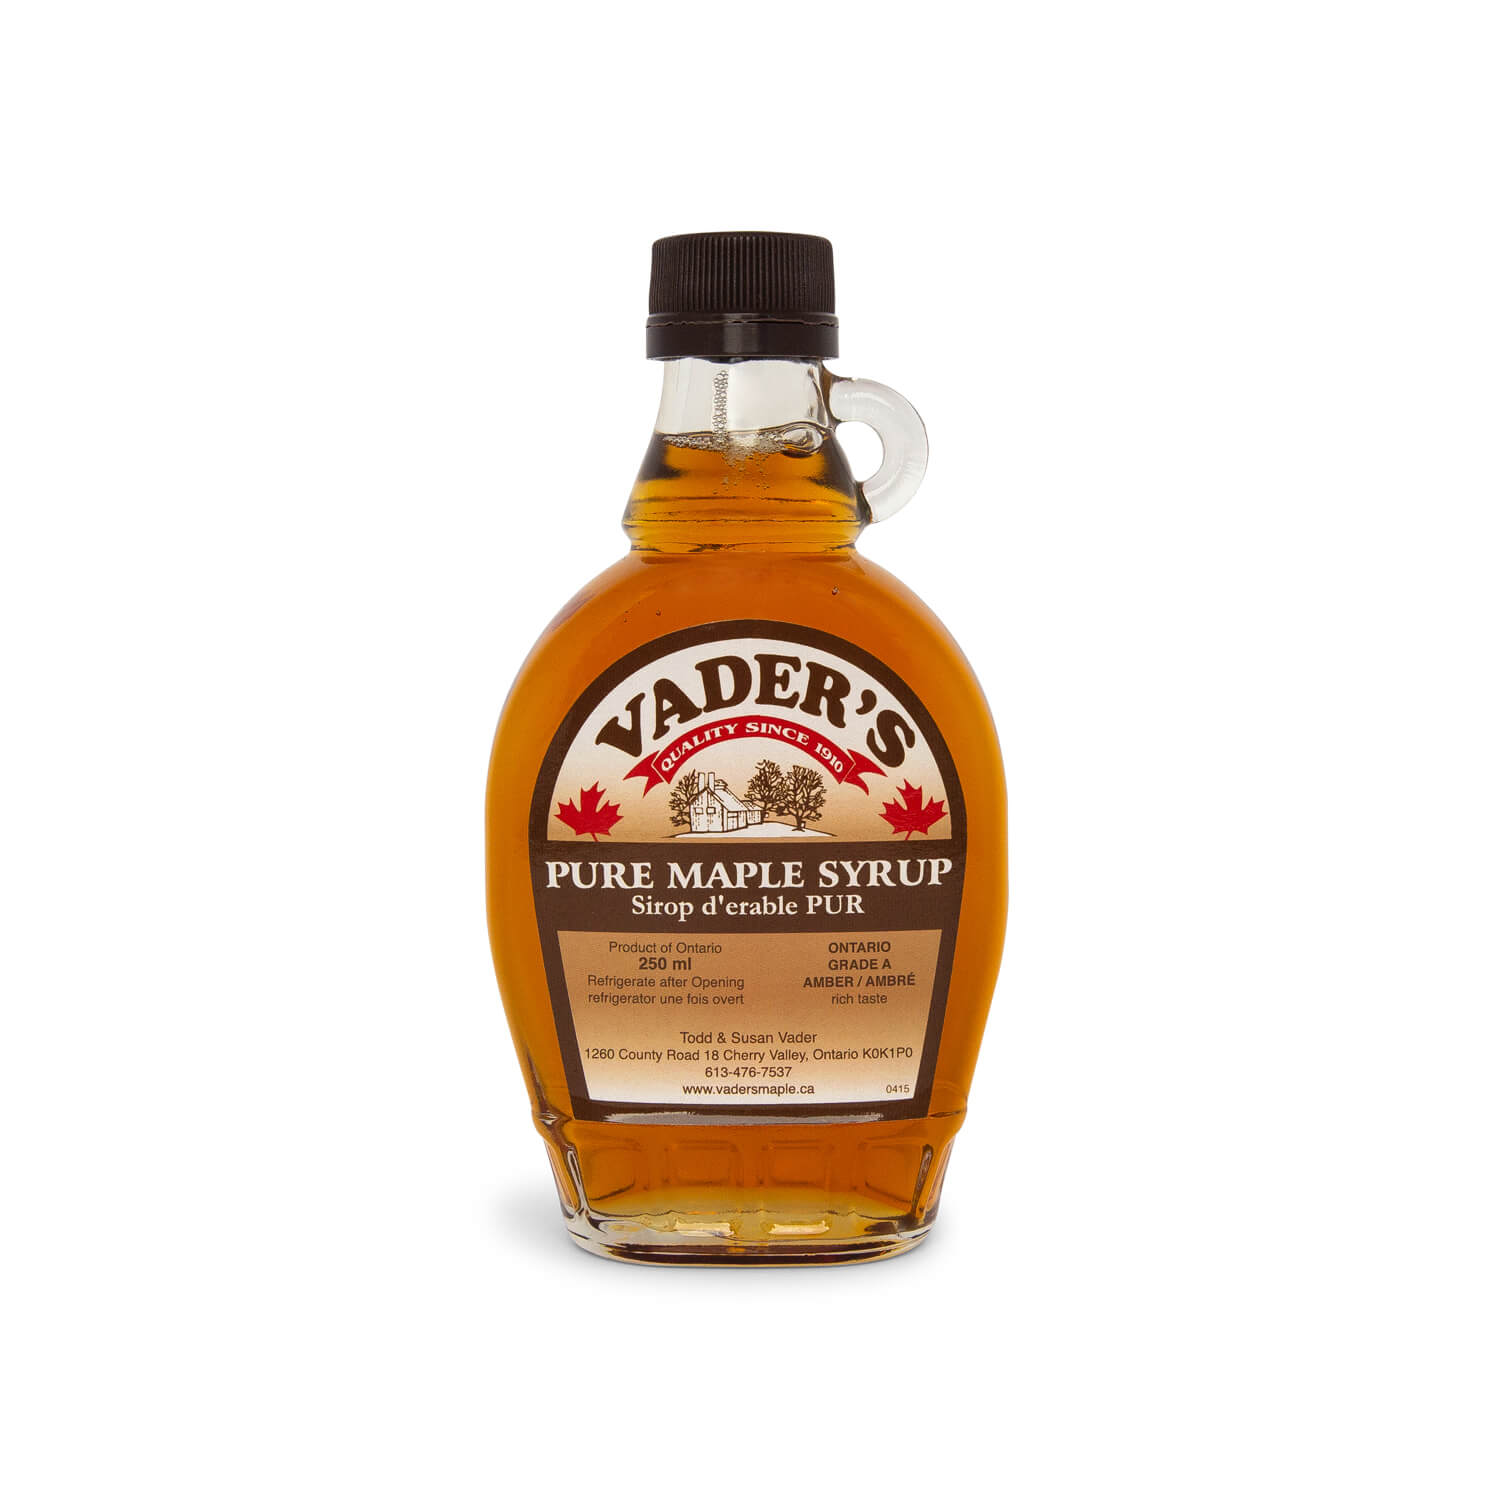 Vader's Amber Maple Syrup (250ml)